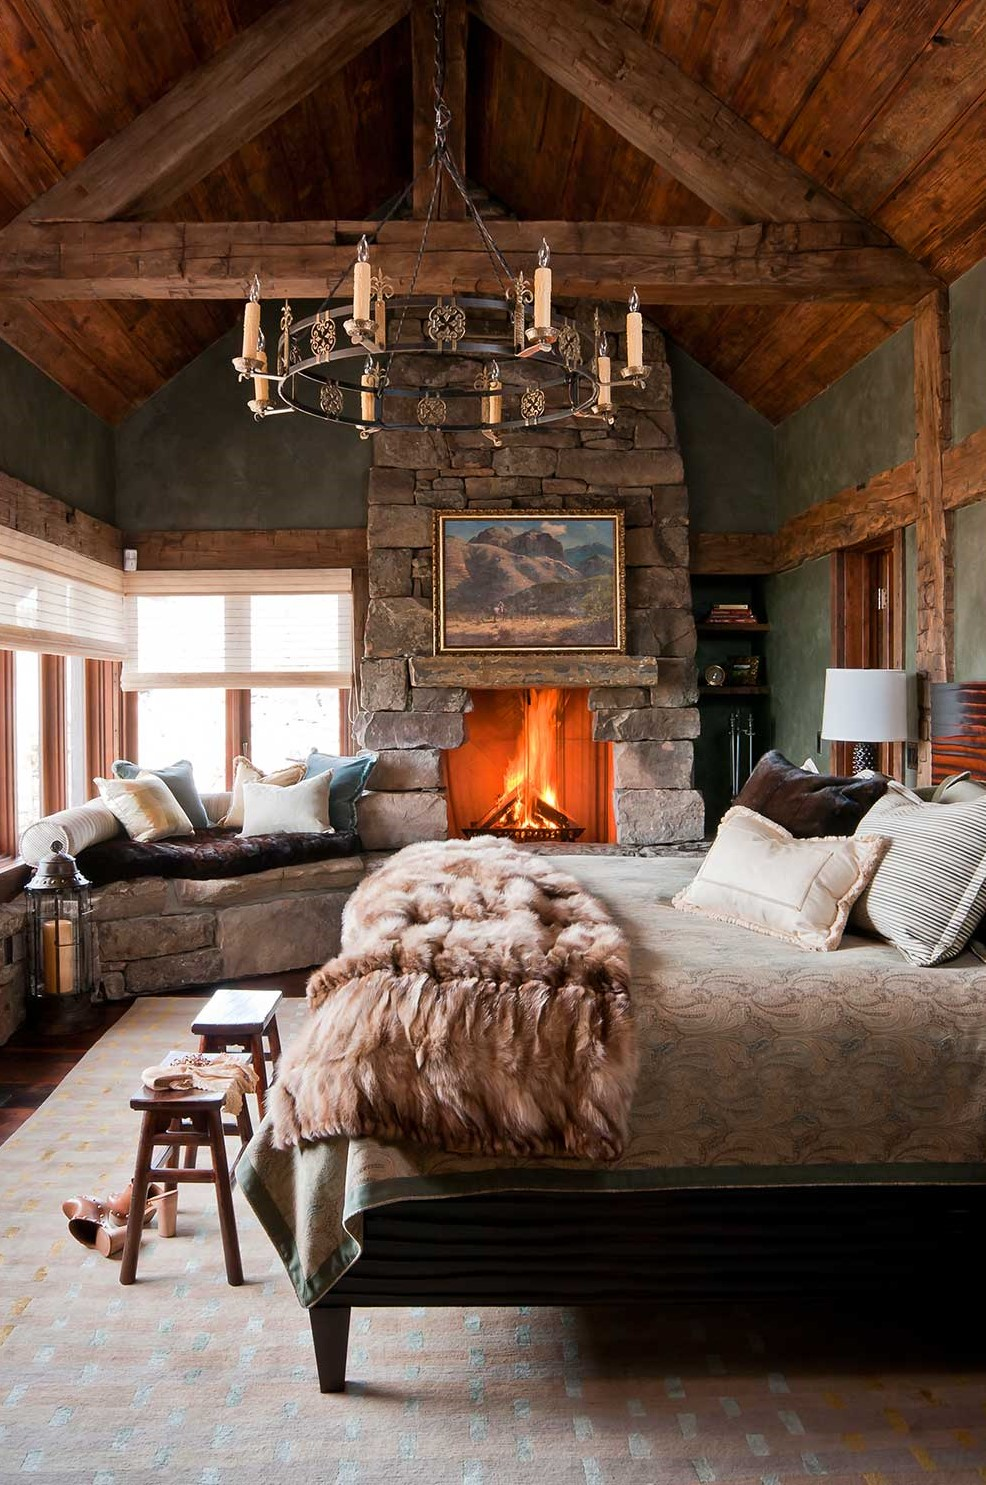 wood ceiling and cozy fireplace, bedroom design ideas